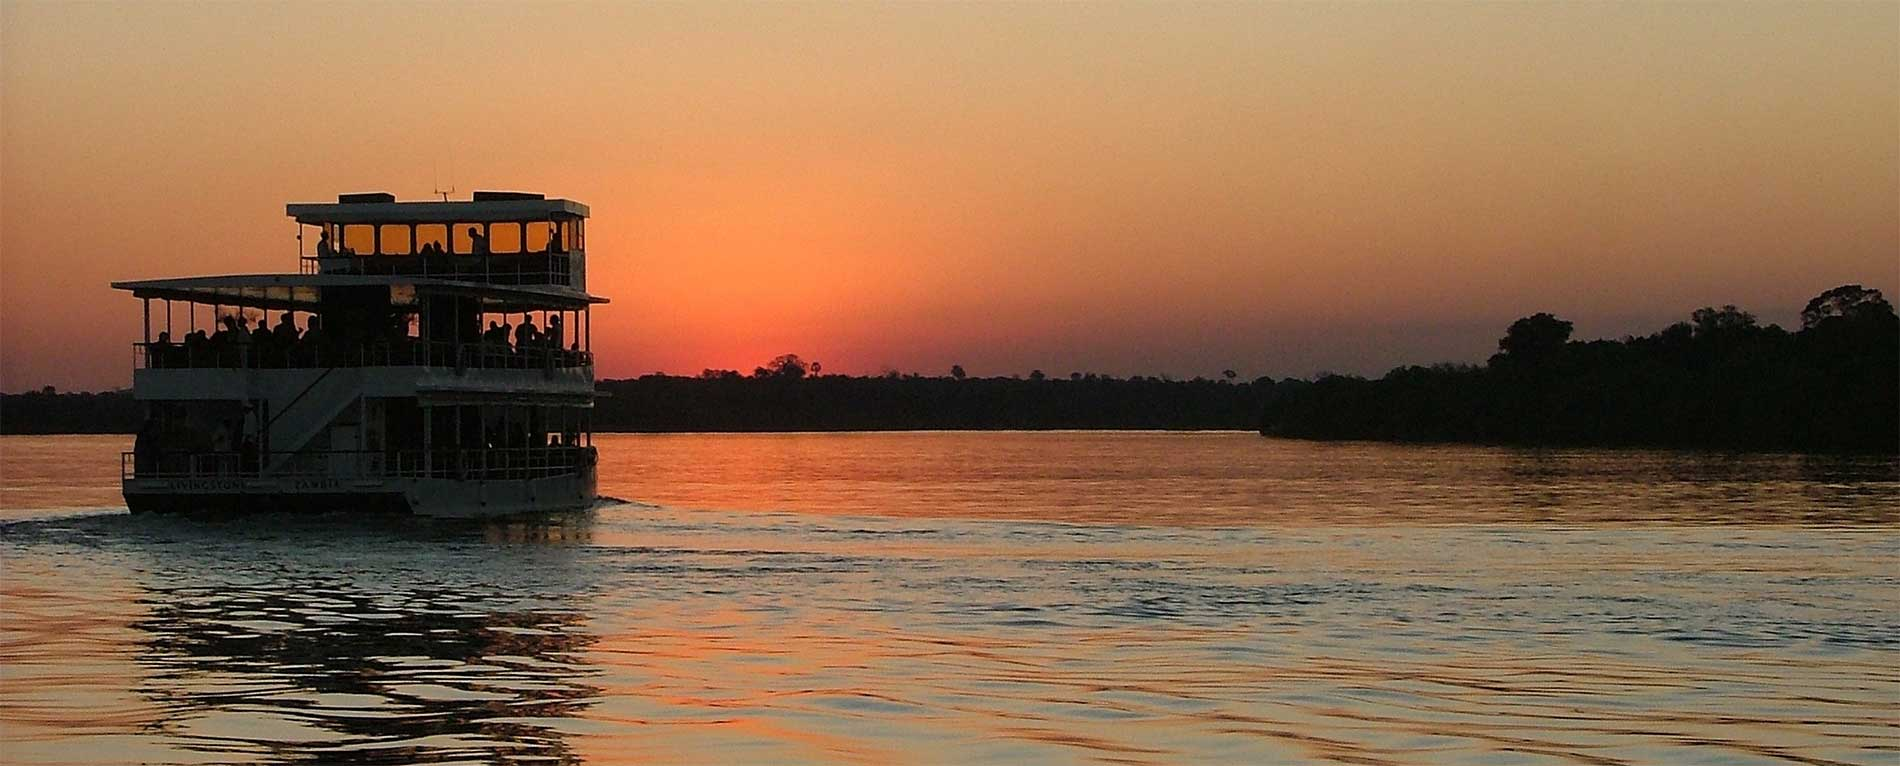 Bongwe-zambezi-sunset-cruise-header